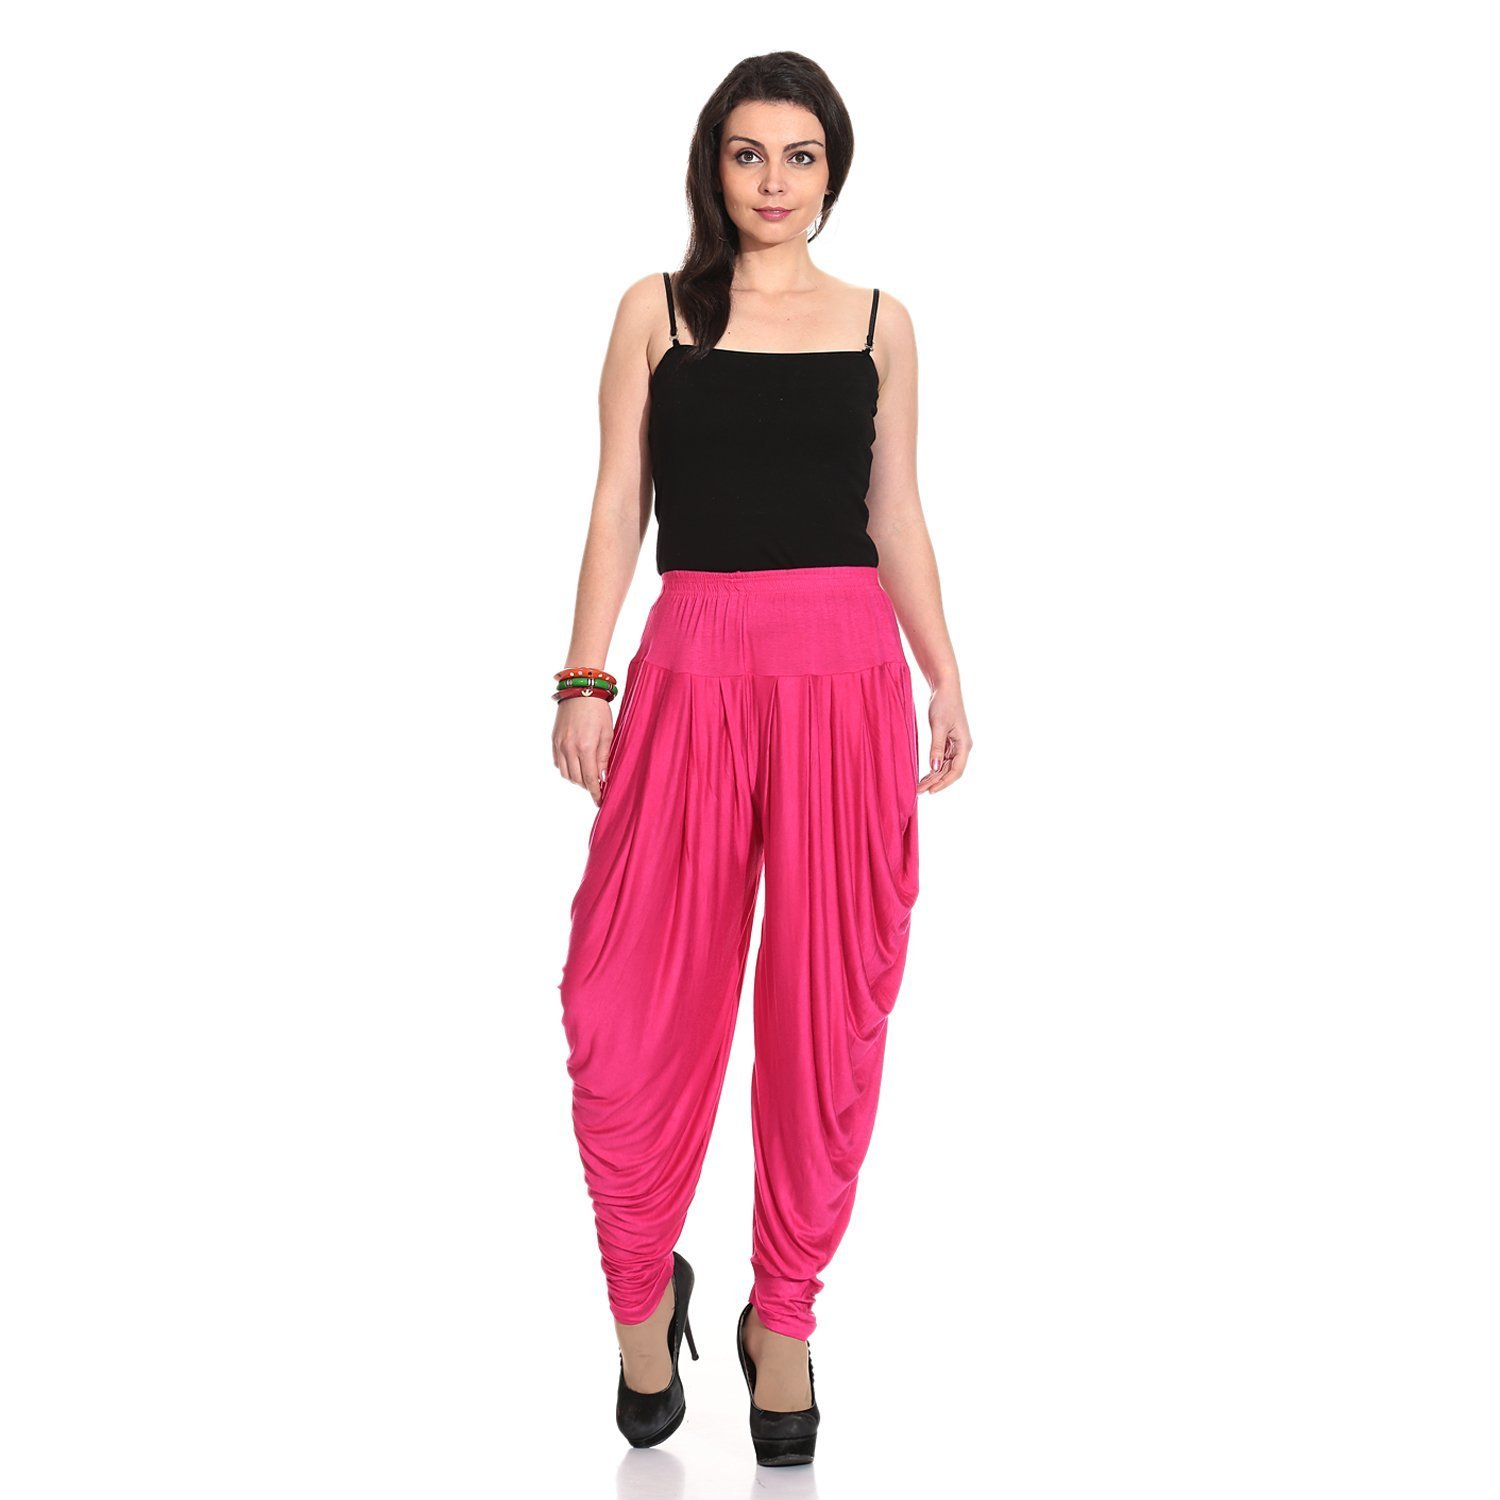 Ardour Dark Pink Relaxed Comfortable Cotton Blend Belly Dance Pants for Women- Free Size by Ardour (Image #4)